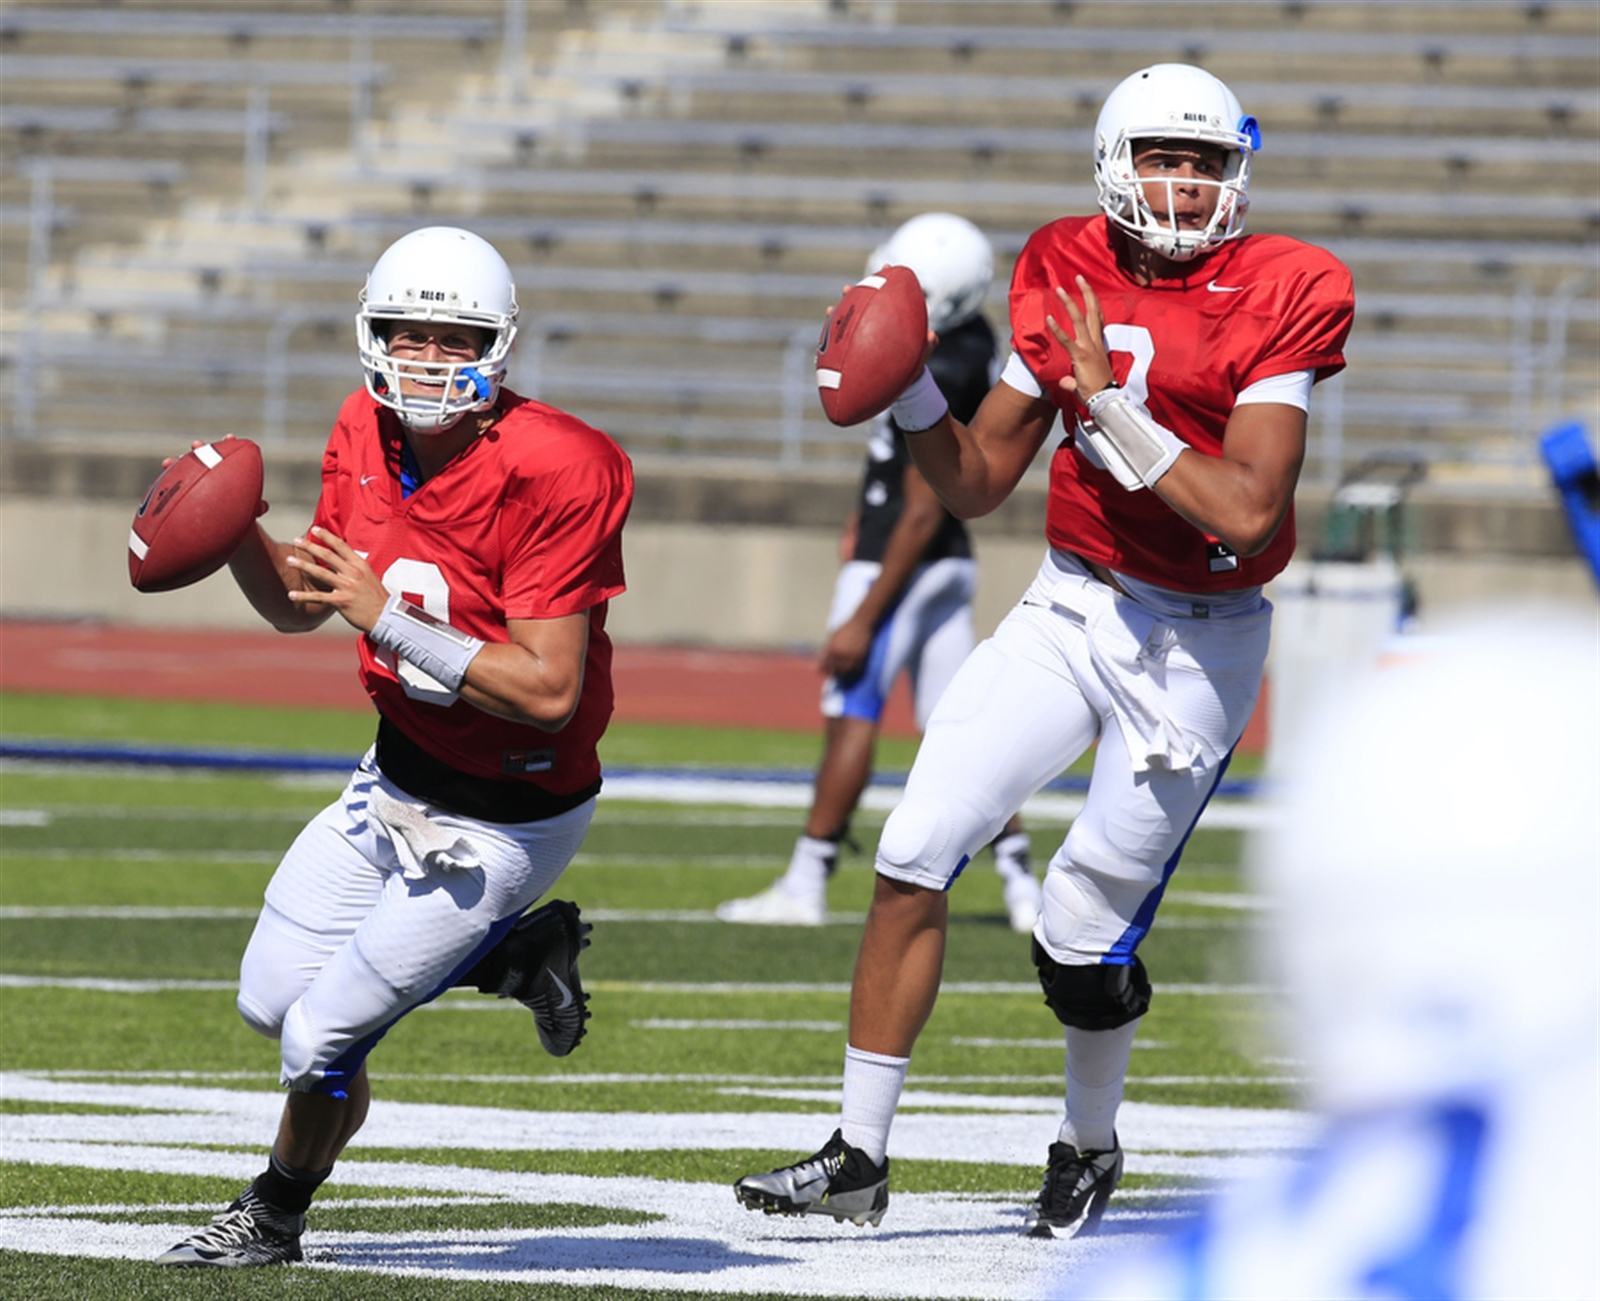 University at Buffalo quarterbacks Grant Rohach (19) and Tyree Jackson (3) take part in drills during practice.